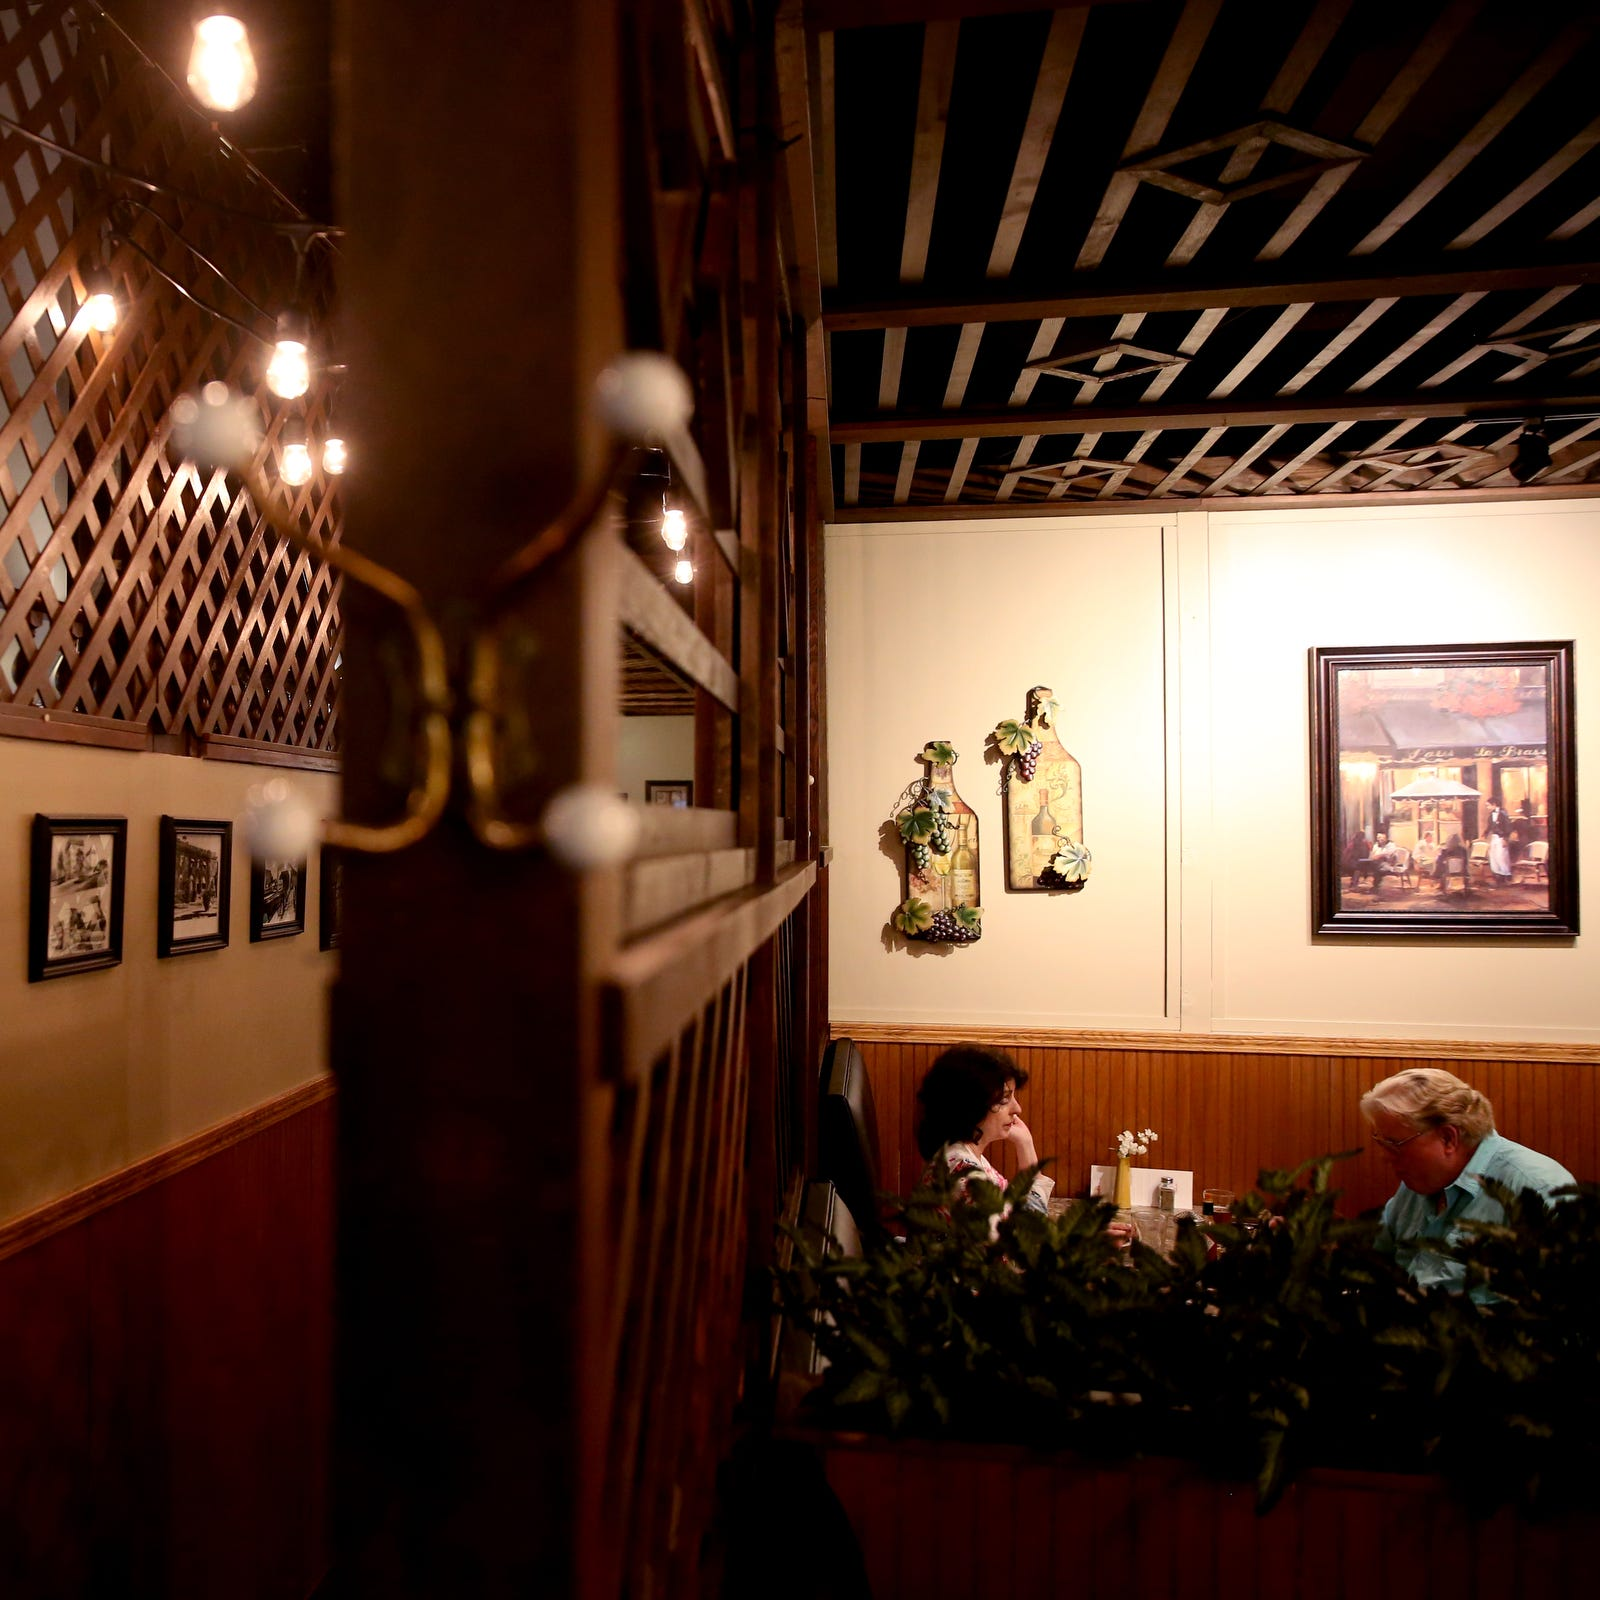 Still retro, but refreshed; Geppetto's Italian Restaurant reopens following fire